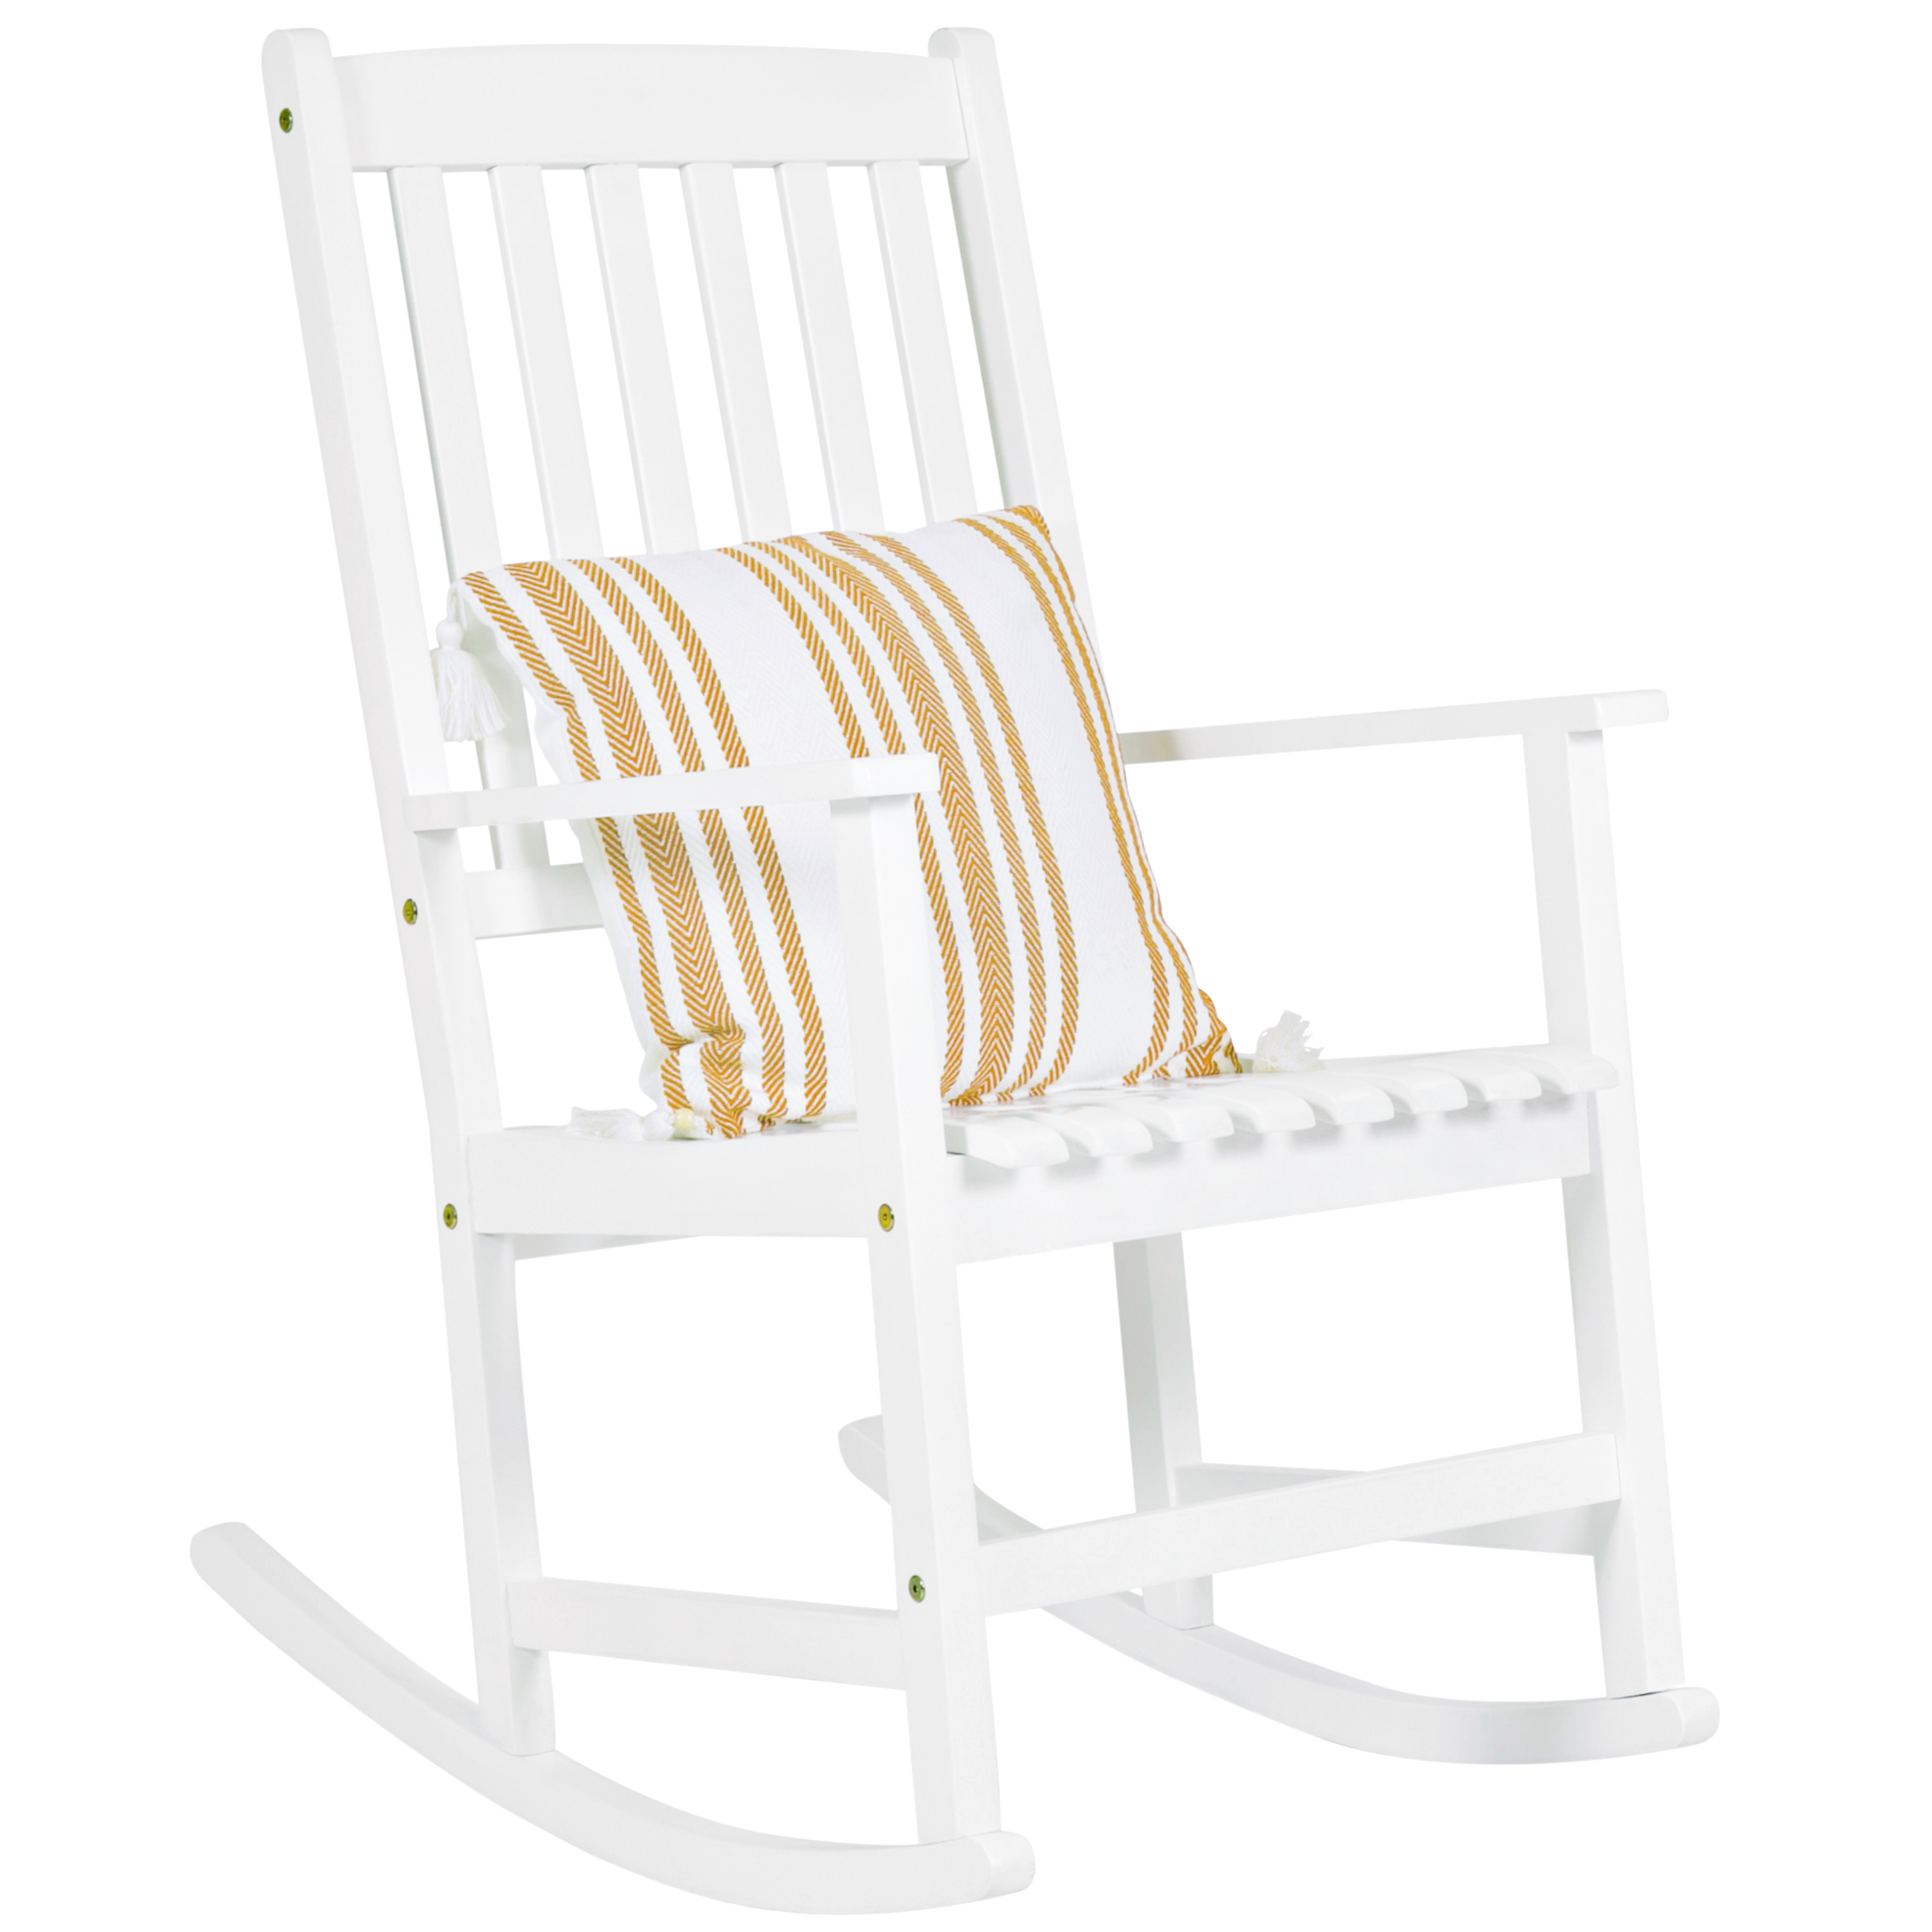 Best Choice Products Indoor Outdoor Traditional Slat Wood Rocking Chair Furniture for Patio, Porch, Living Room White by Best Choice Products